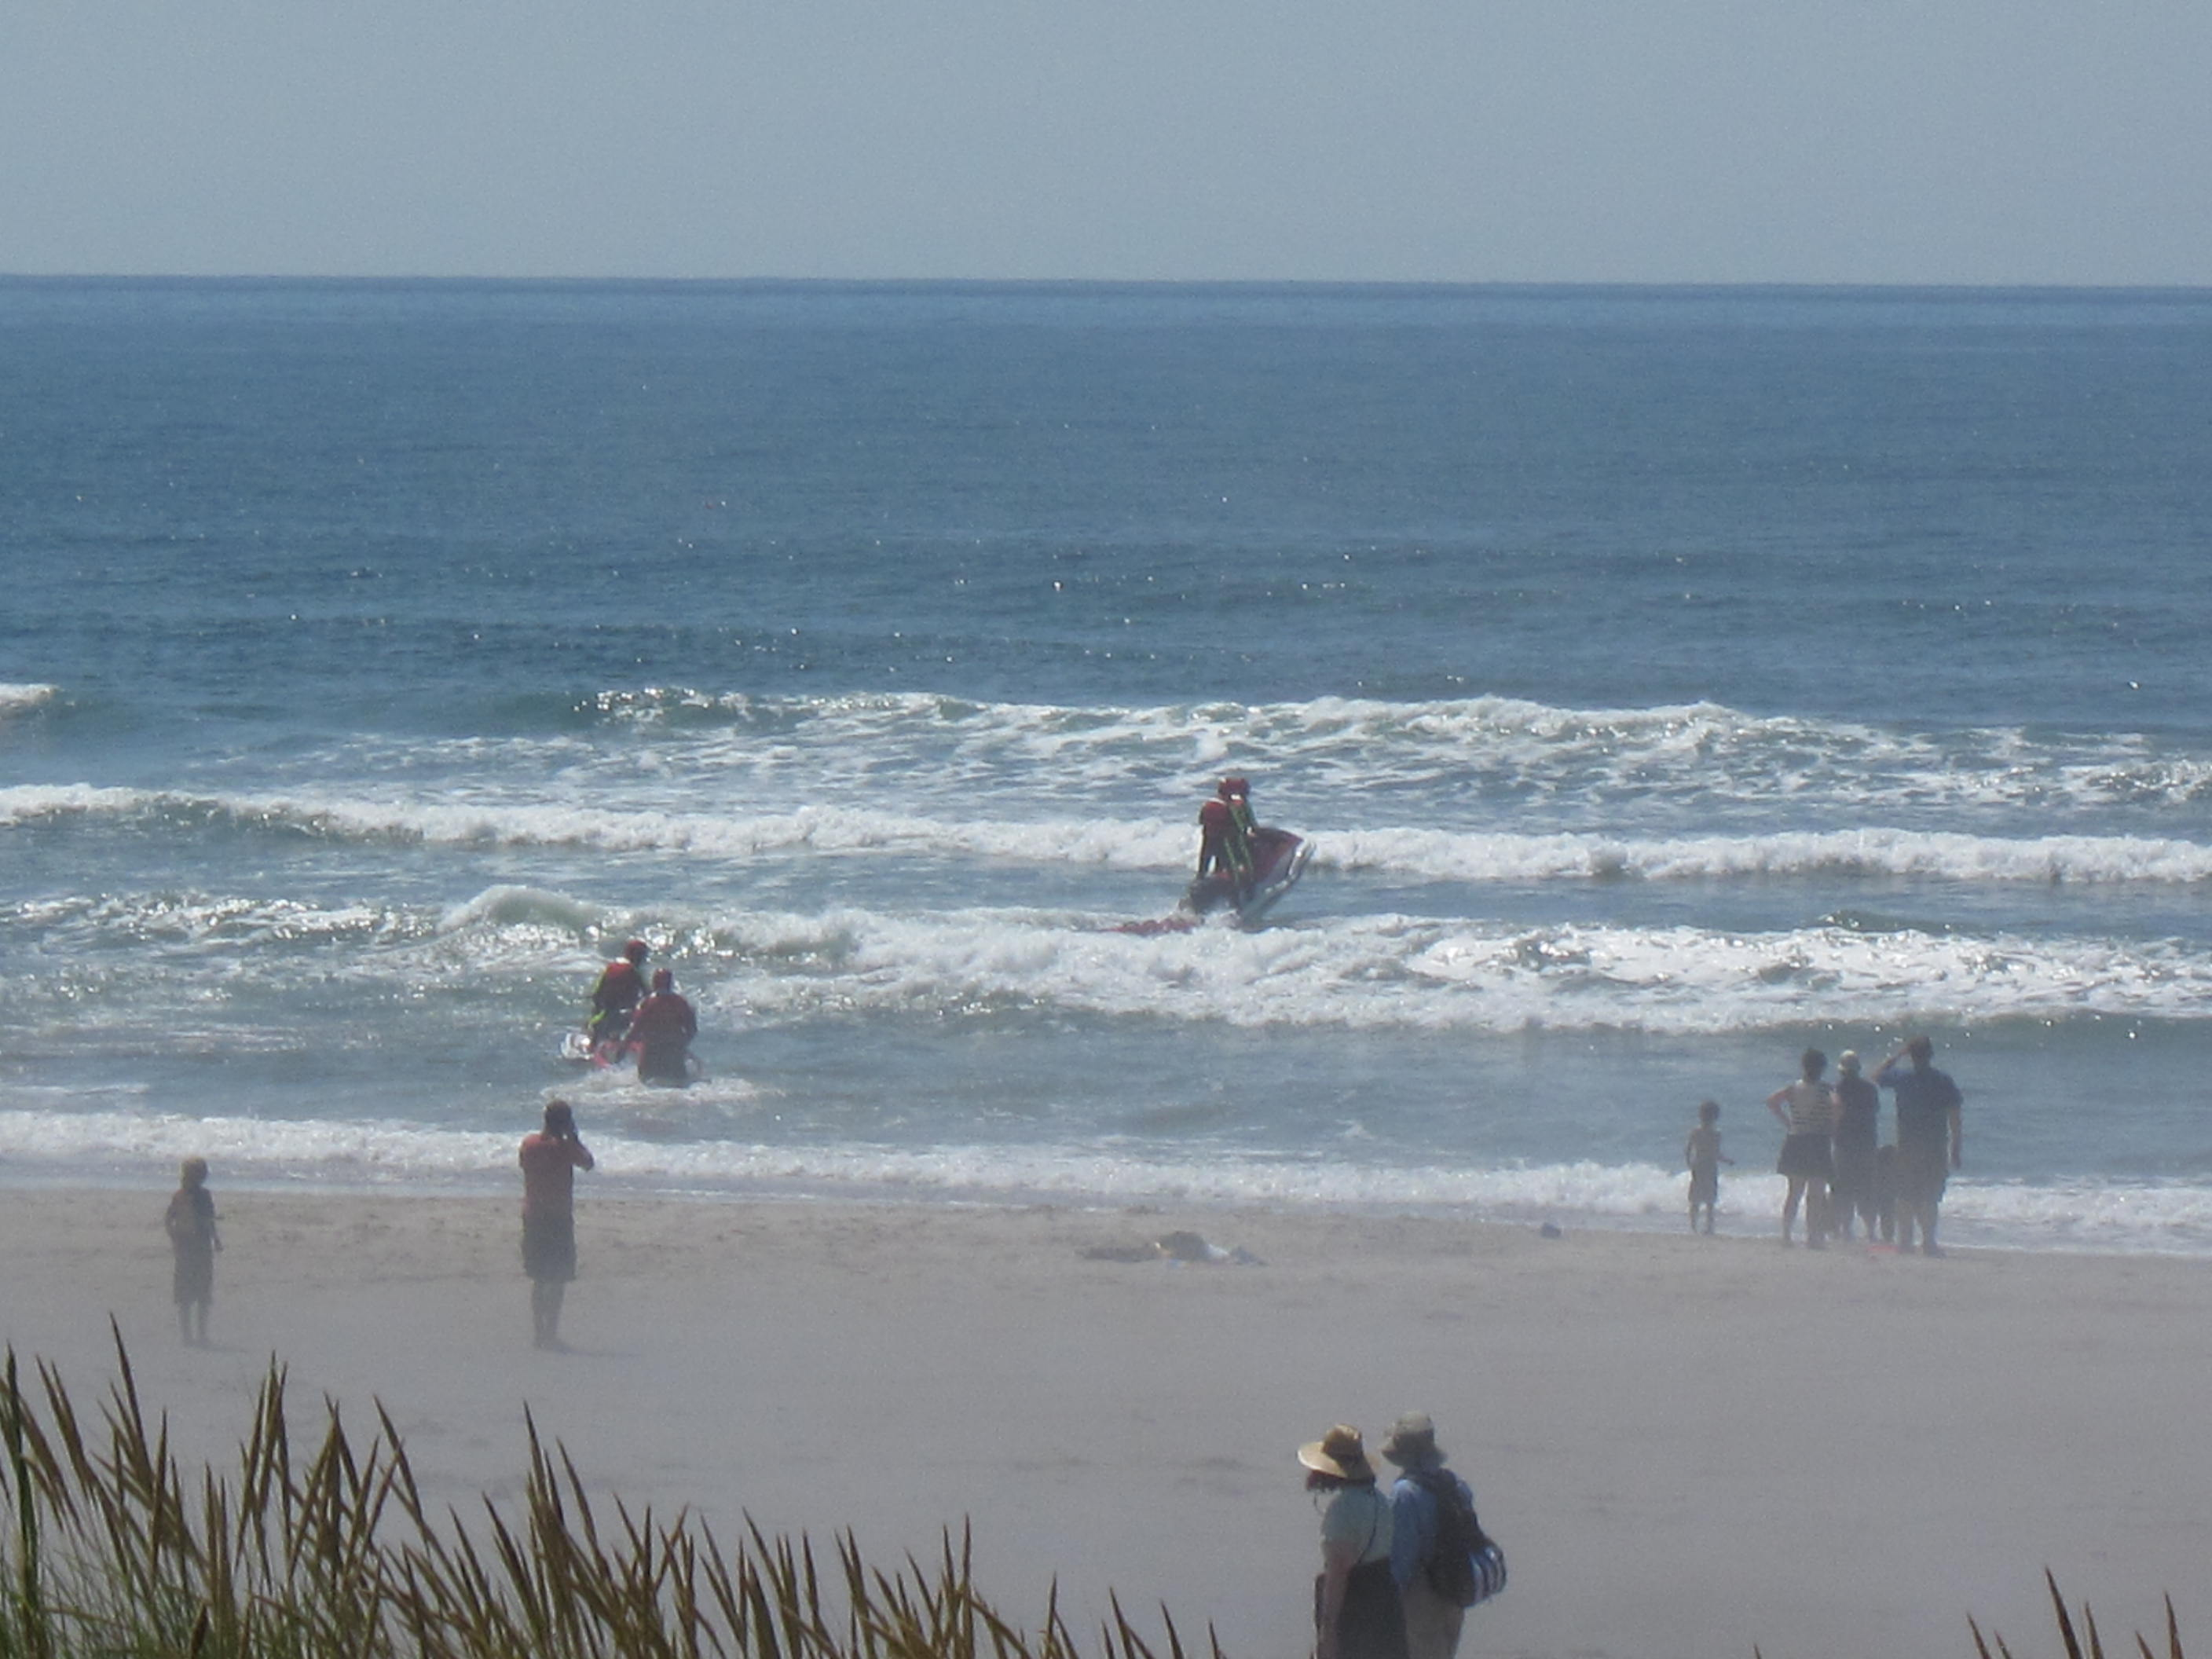 """seaside oregon dating Exploring seaside, oregon's outdoors """"roll up your jeans—we're getting in the ocean"""" my girlfriend, brooke, insisted i couldn't argue with that we were on a soft, beautiful, clean beach on the oregon coast."""